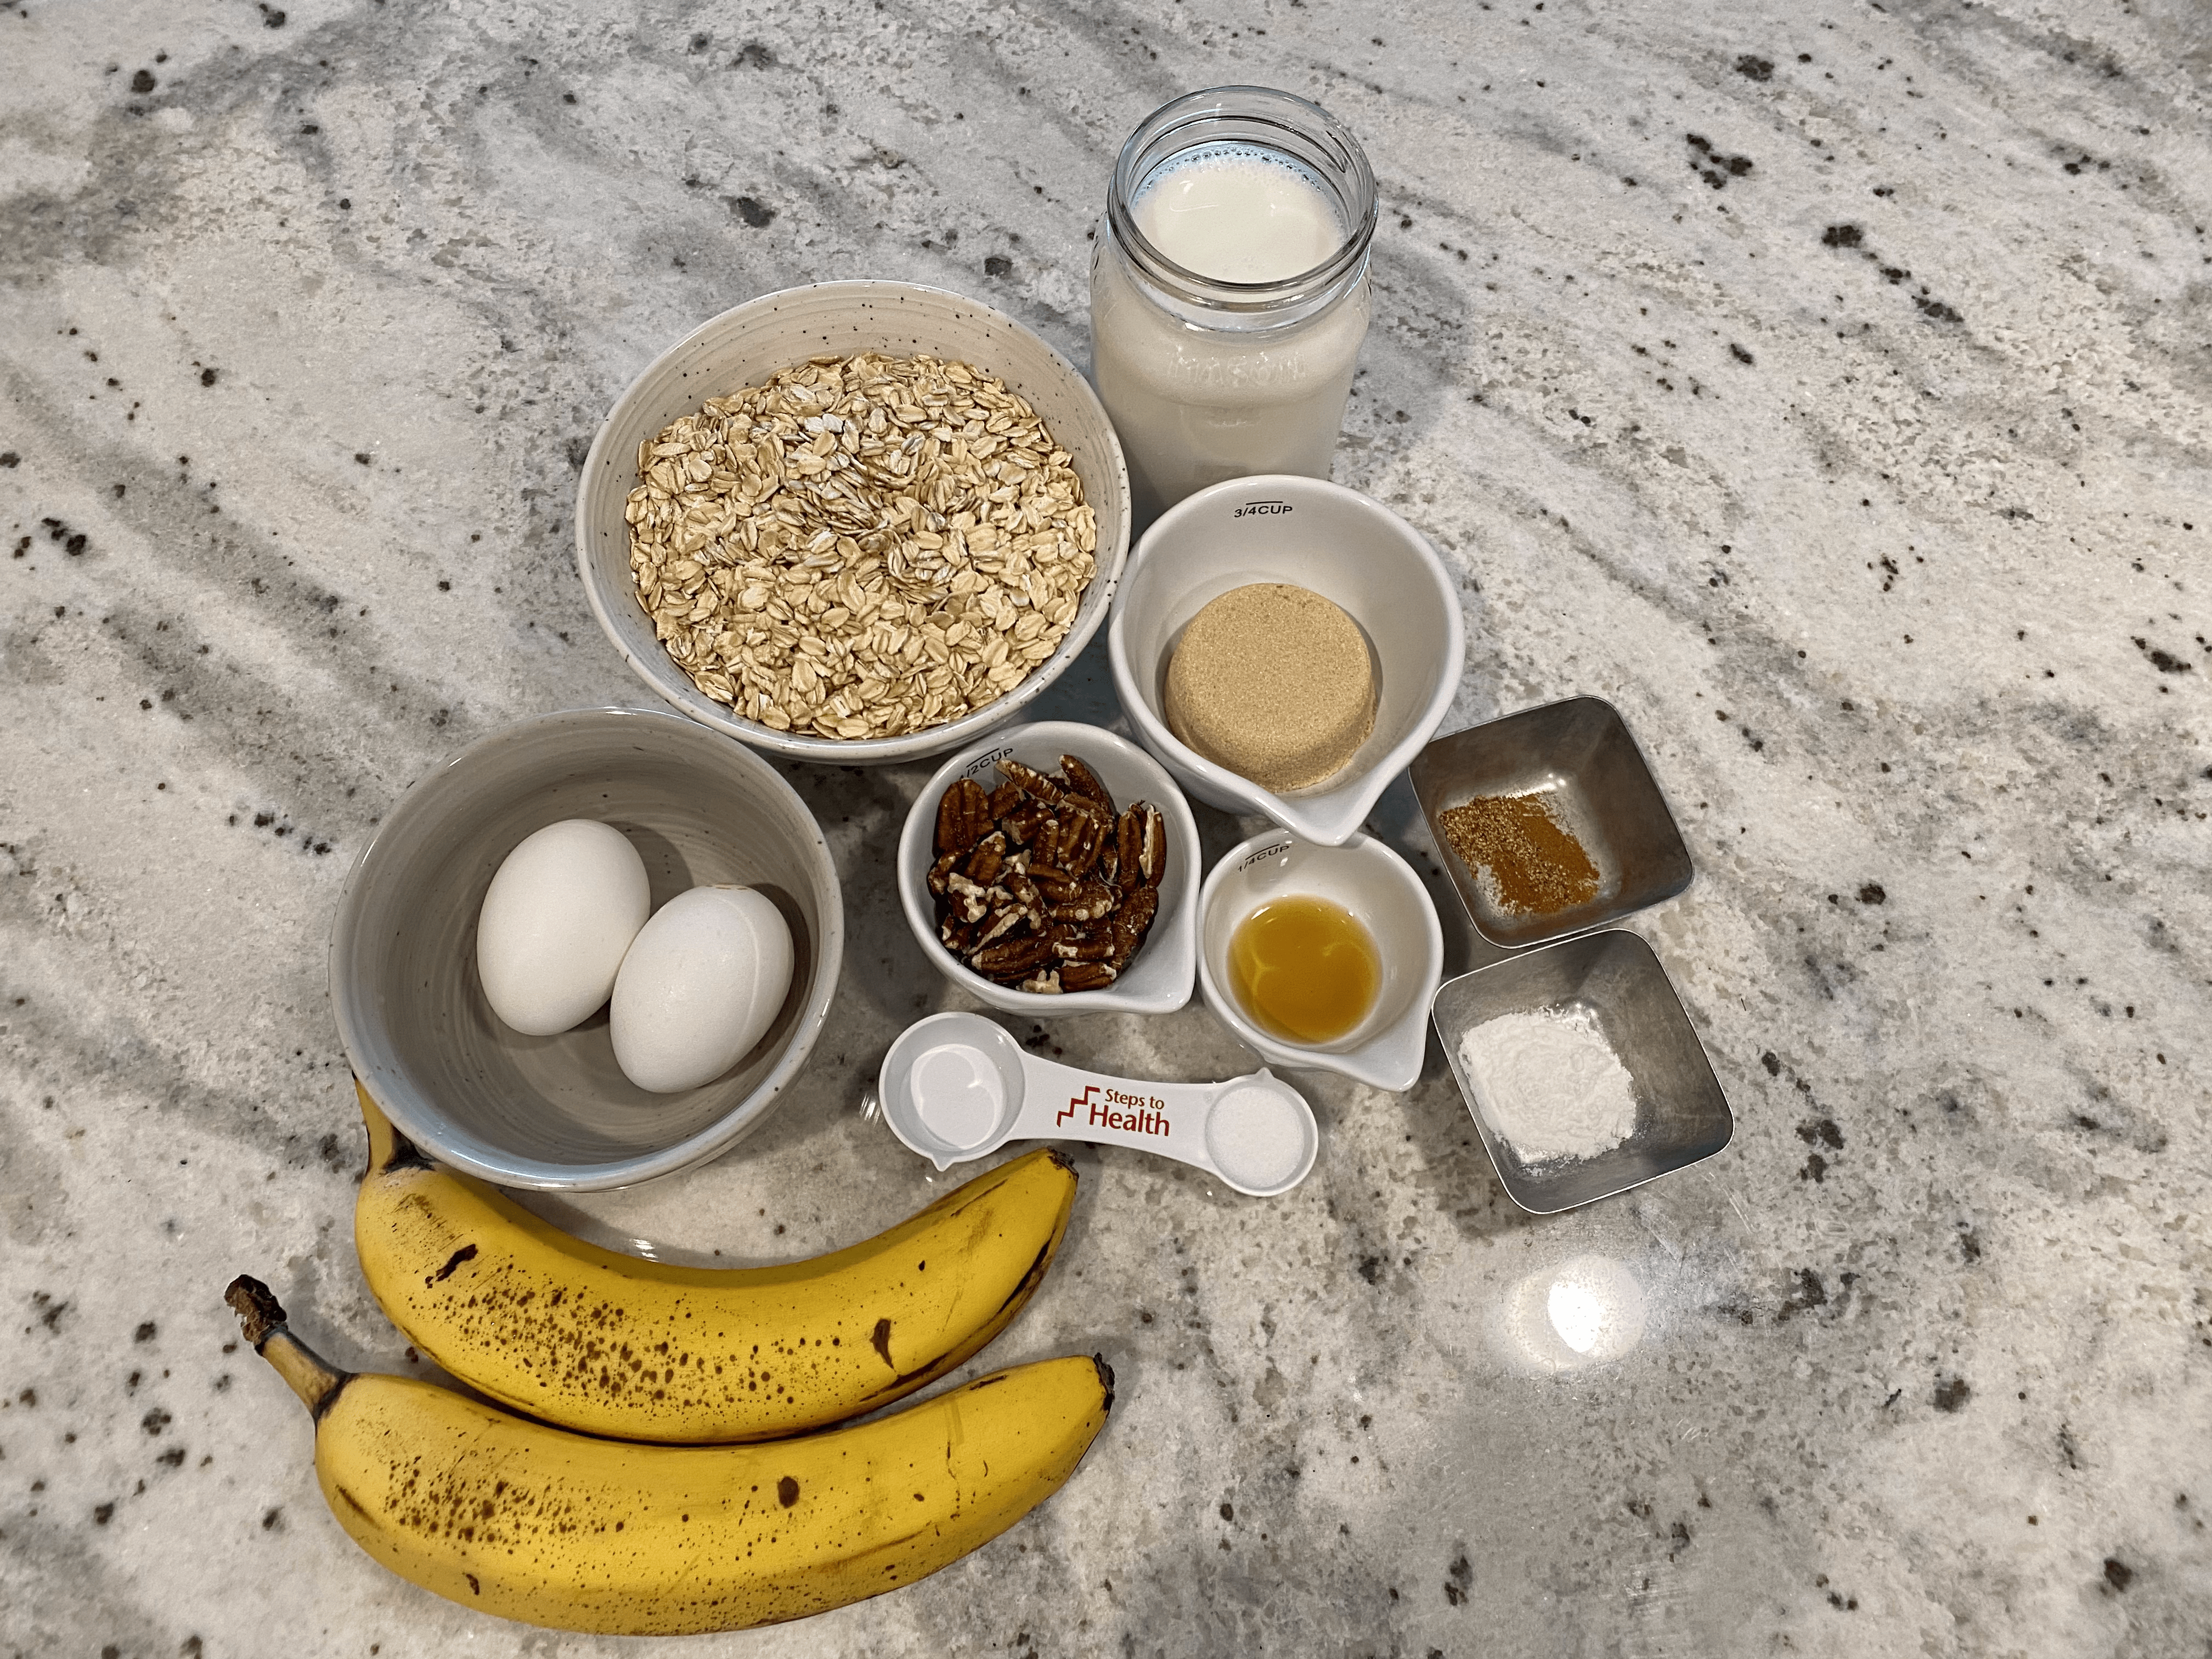 bananas, eggs, tablespoon, and oats on a marble countertop to show ingredients needed to make recipe